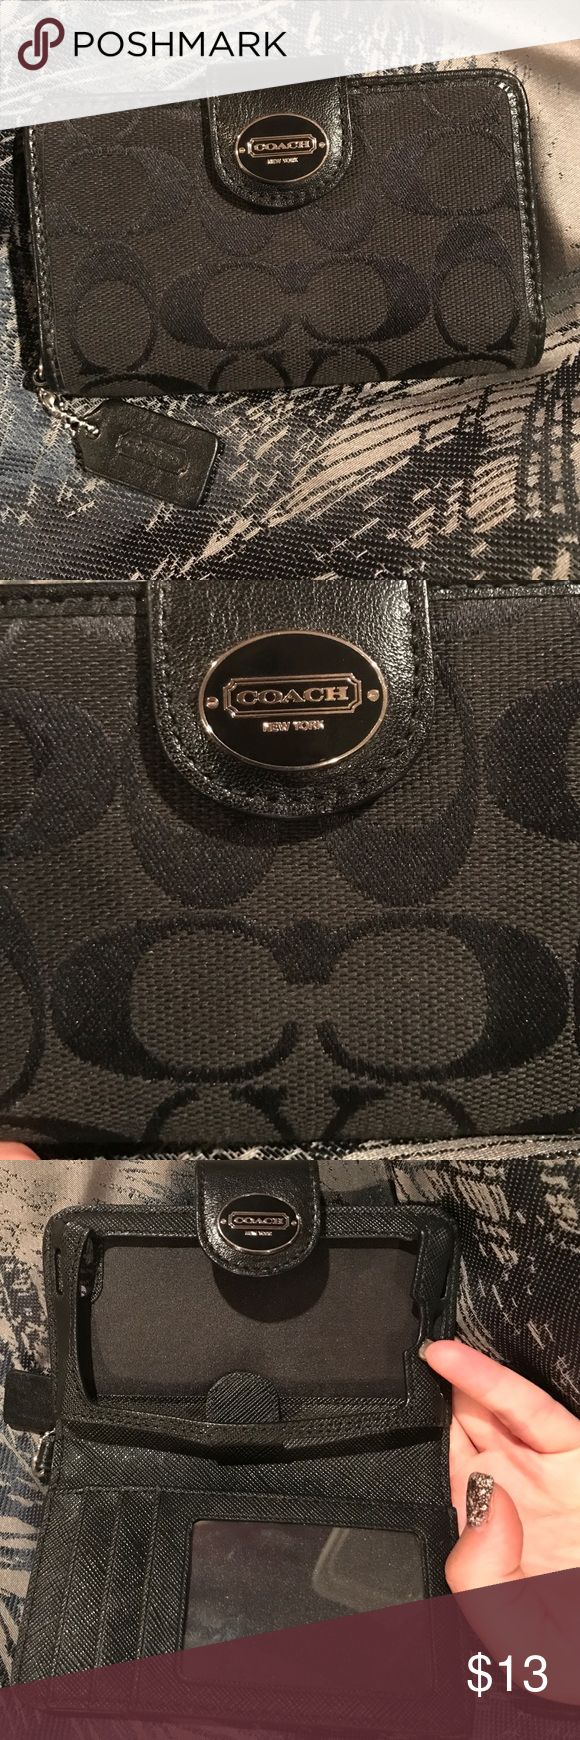 NWOT Coach Iphone 4 wallet holder authentic authentic coach wallet case for iphone 4! NWOT i am positive it is for the iphone 4 i measured the iphone slot and it came to 4.5 inches which is according to google the size of the iphone 4. it would be too small for the iphone 5 which is 4.87 inches and the iphone 4 and 3 versions are 4.5 inches. *no trades offers only* Coach Accessories Phone Cases